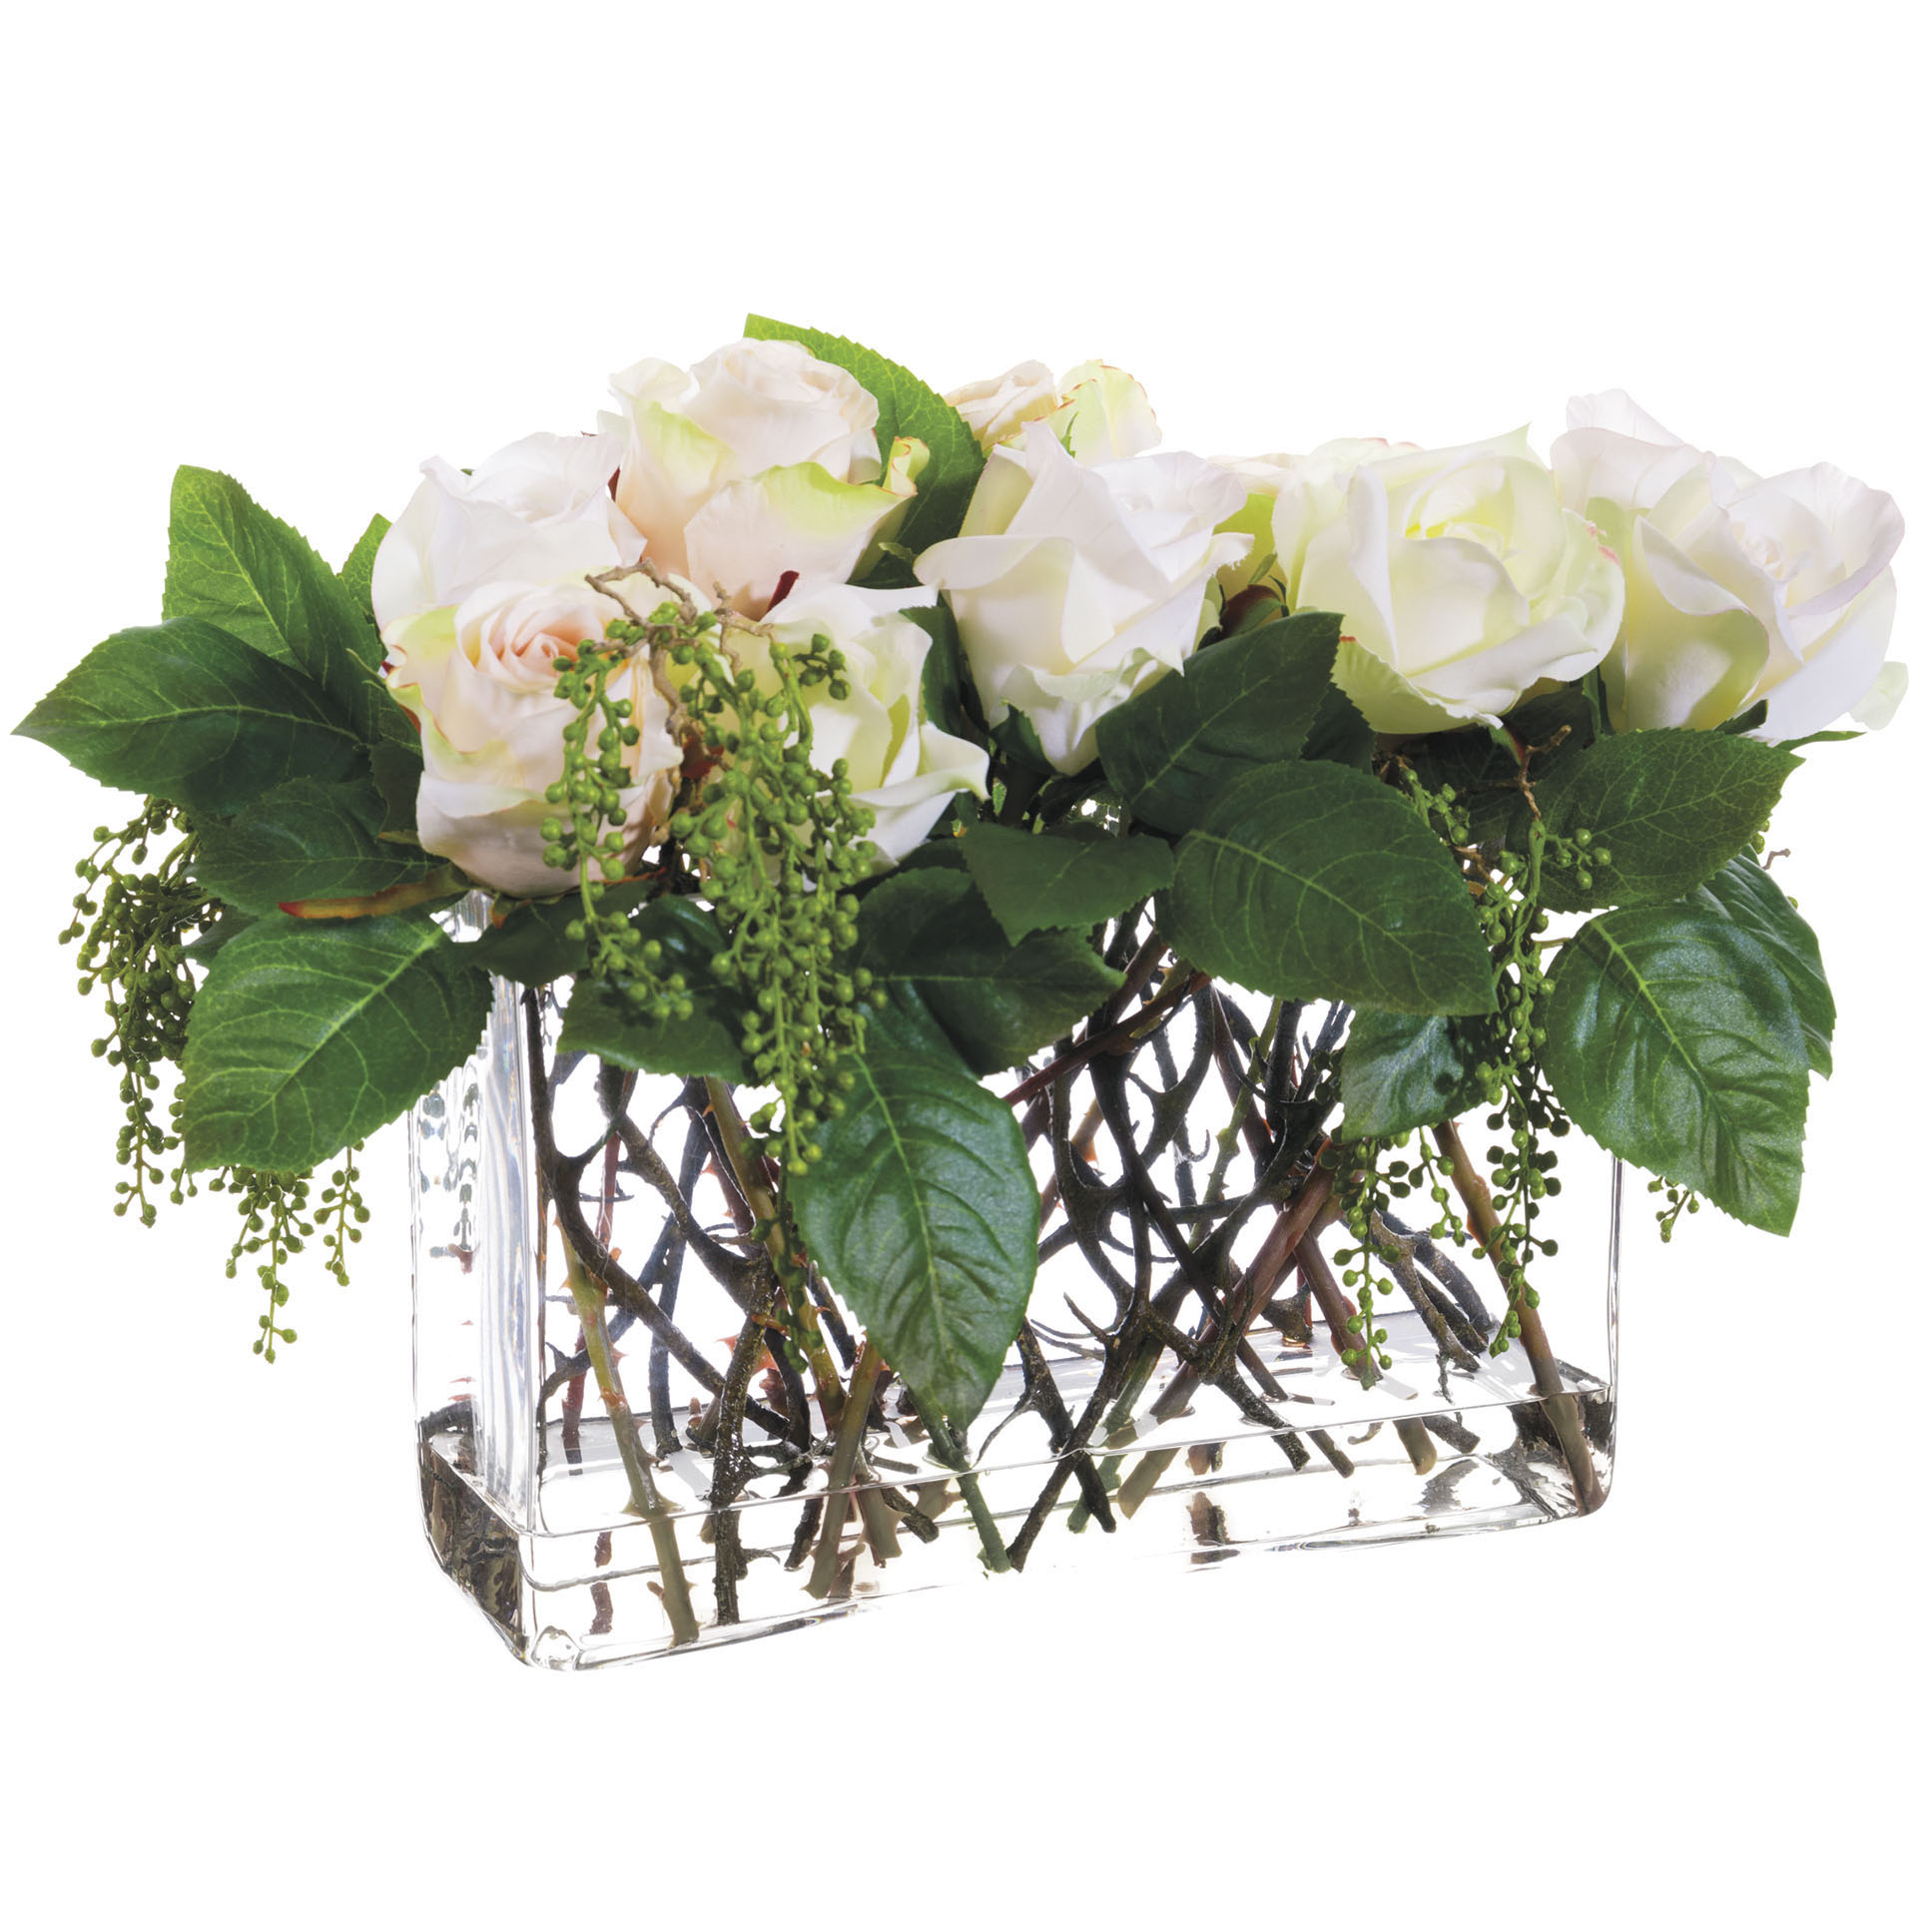 12 Inch Artificial White Rose And Berry Arrangement In Glass Vase